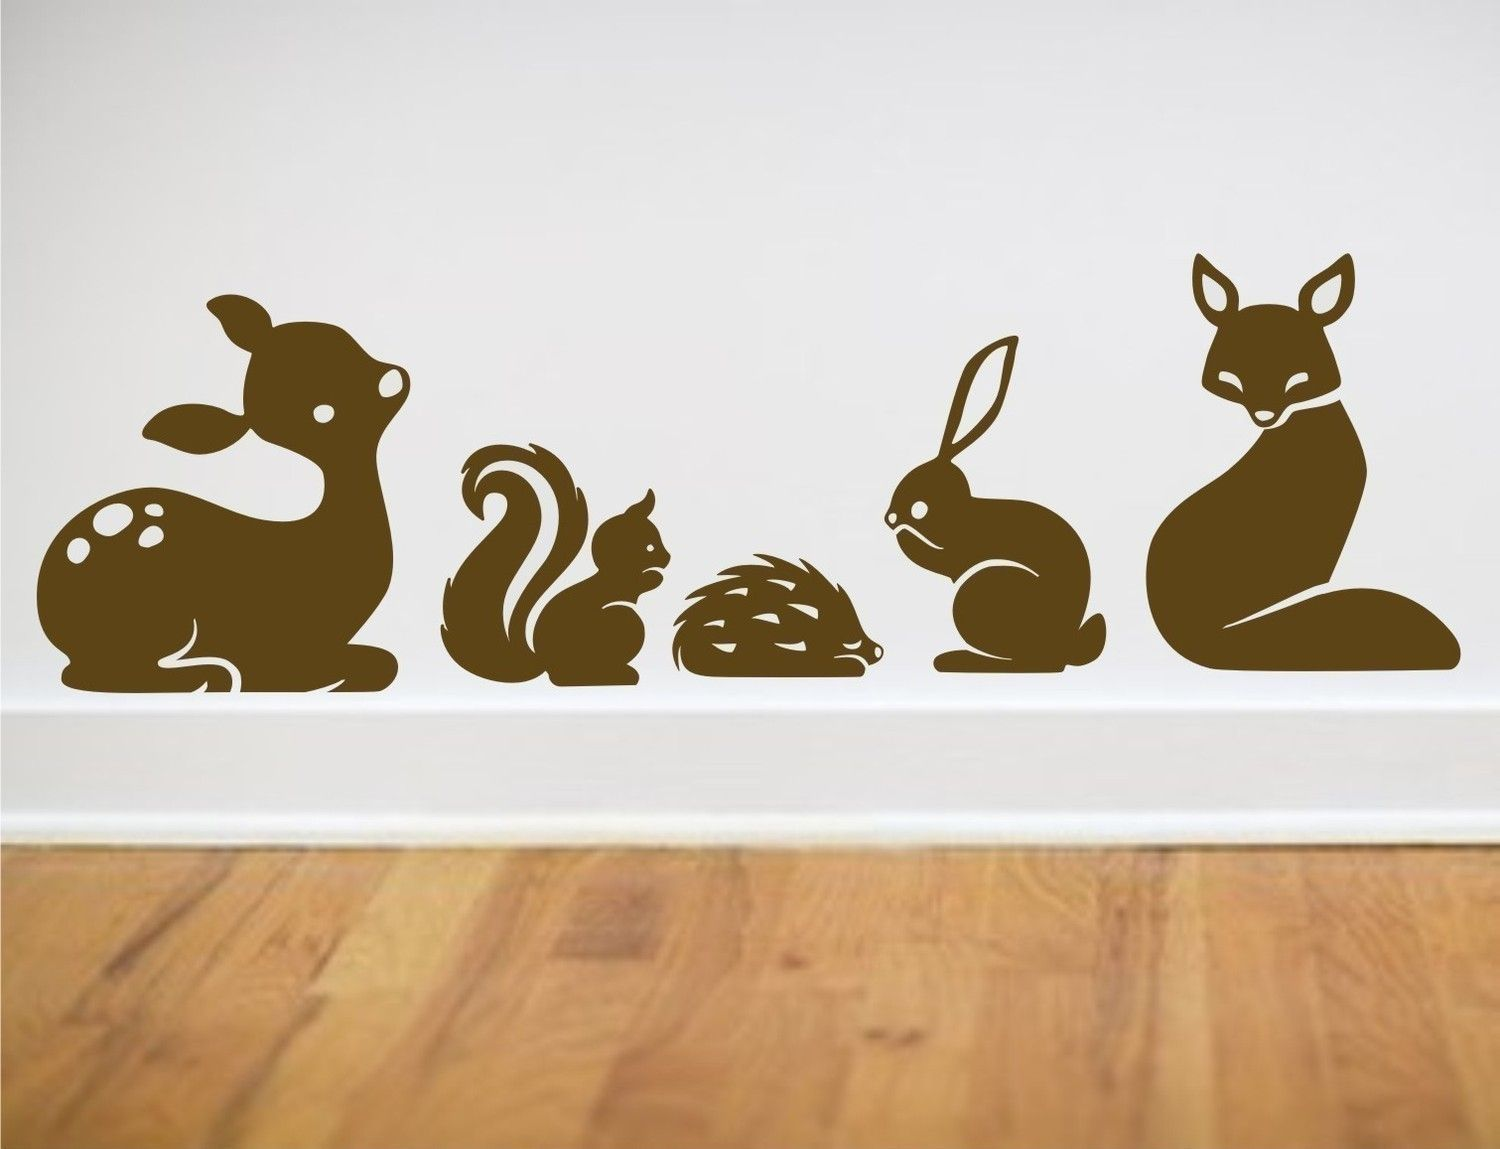 Deer Skunk Hedgie Rabbit Fox Kids Room Pinterest - Vinyl wall decals australia